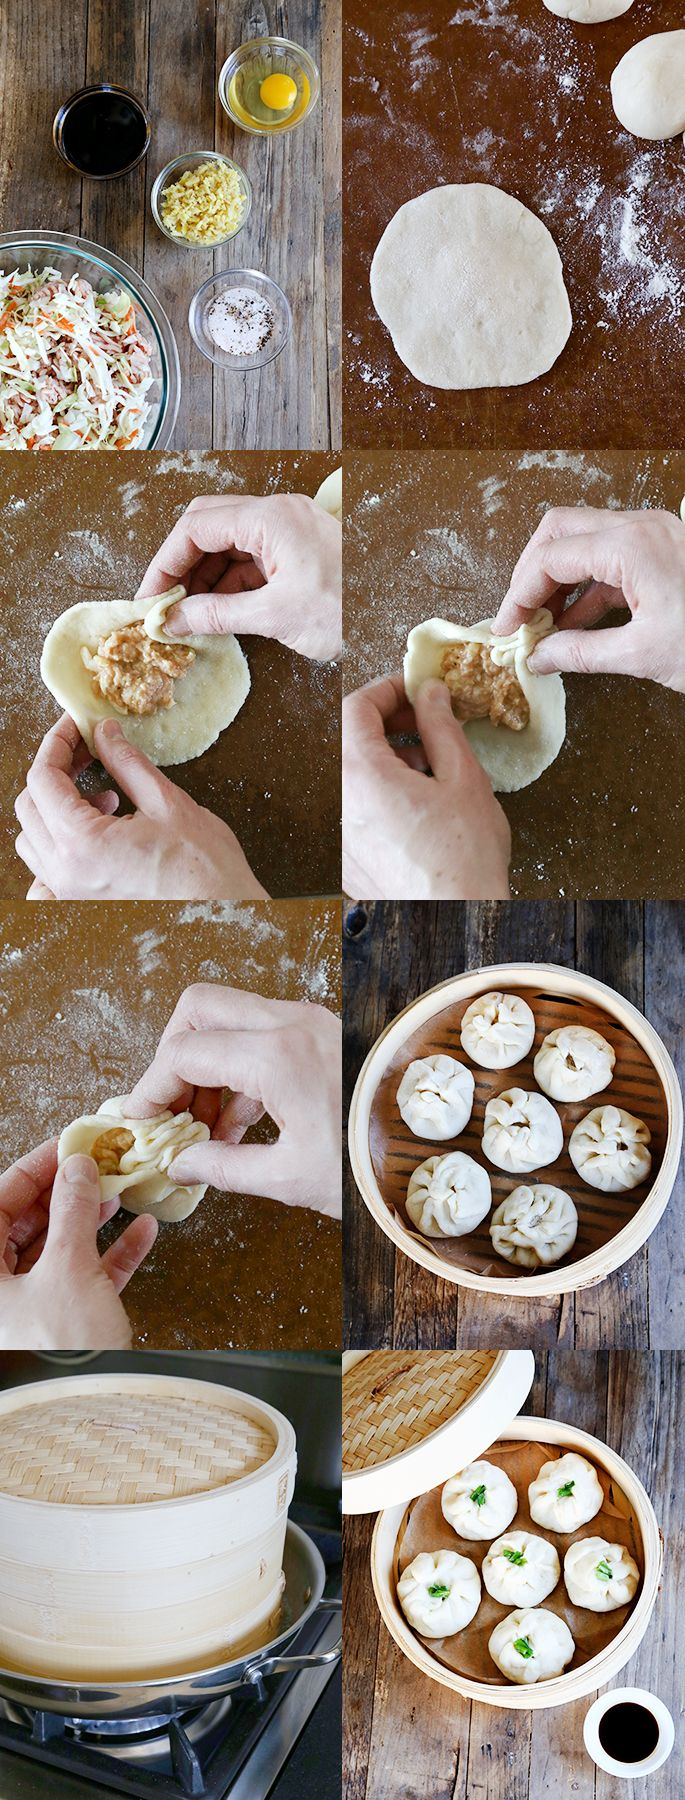 Gluten Free Steamed Chinese Meat Buns, Step by Step